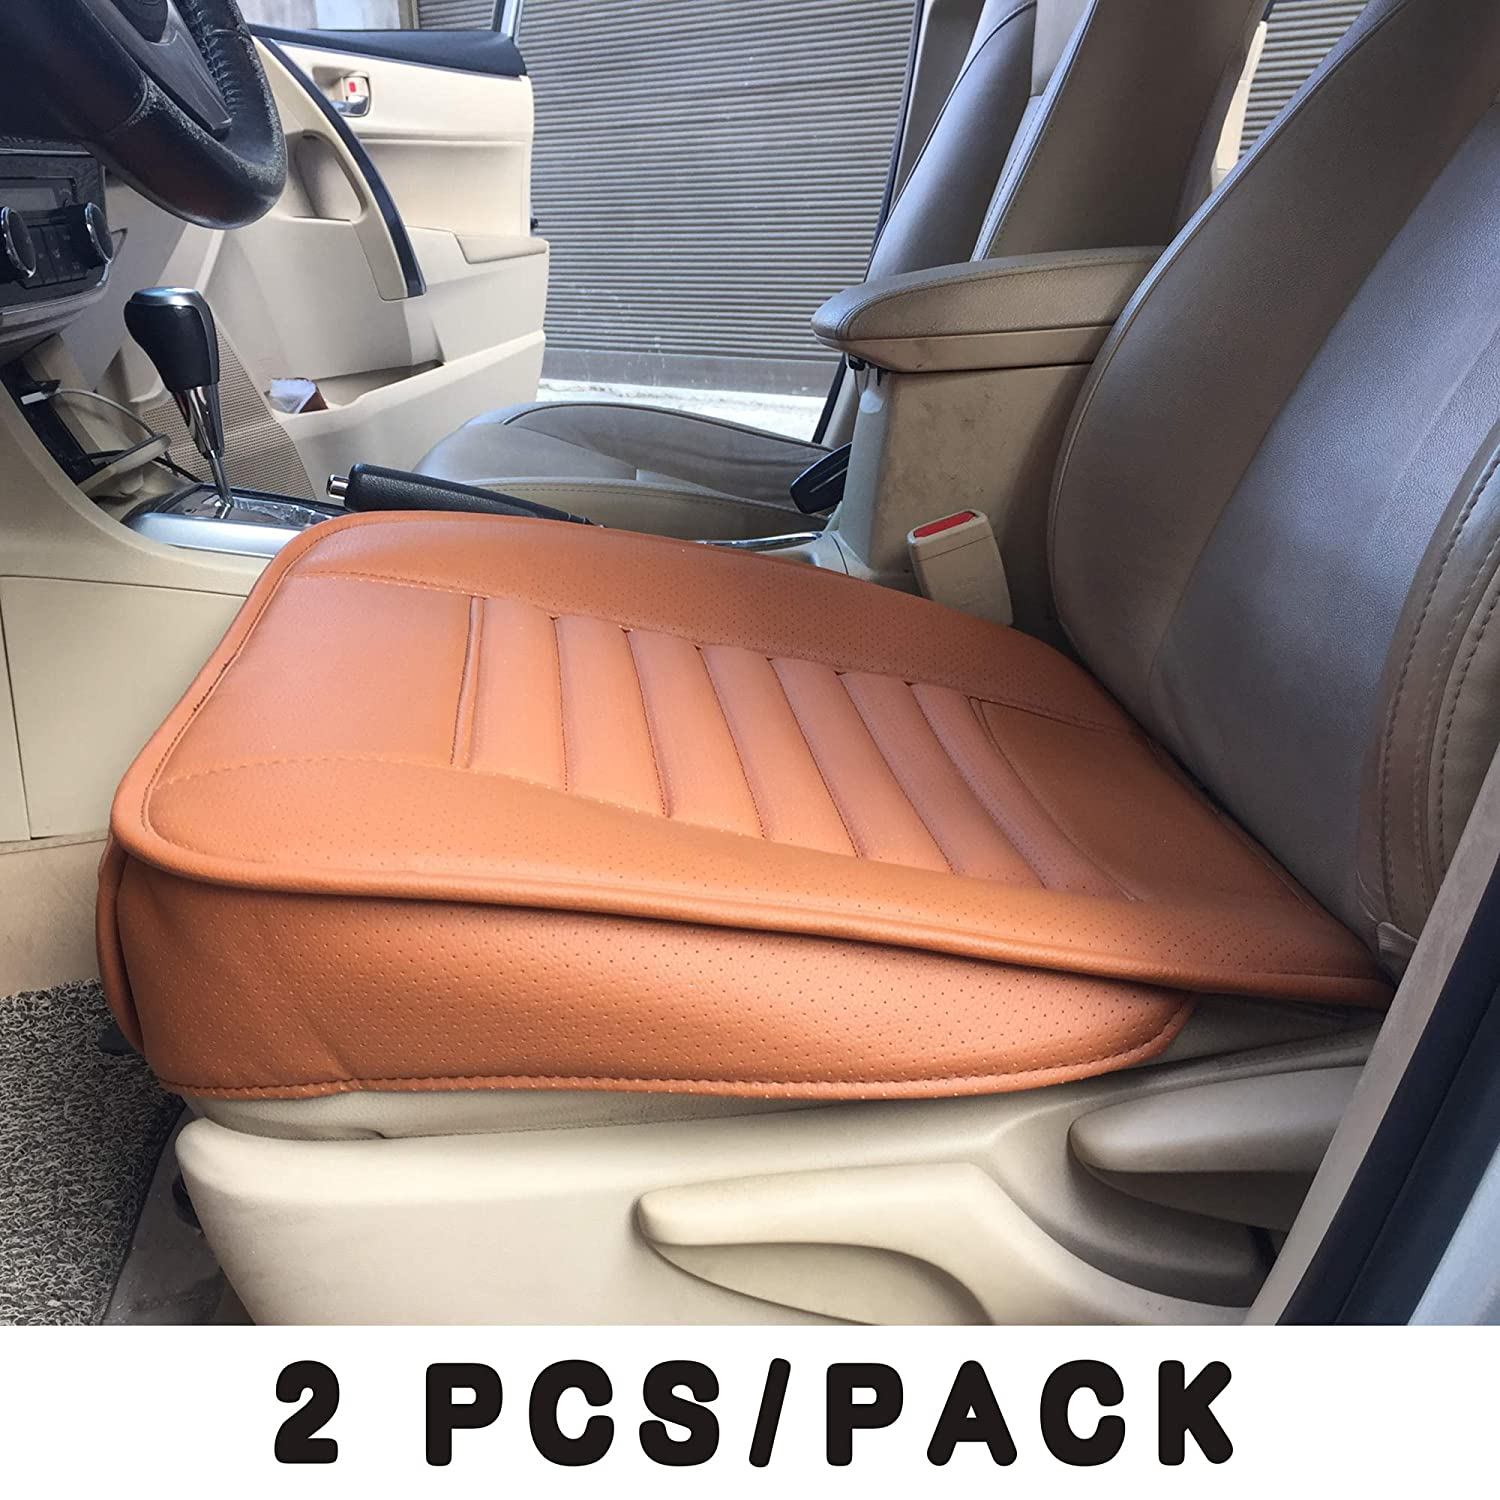 Orange LUCKYMAN CLUB 2 pcs Edge Wrapping Front Car Seat Cover Pad Mat Cushion for Cars Sedan SUV Truck Van with PU Leather